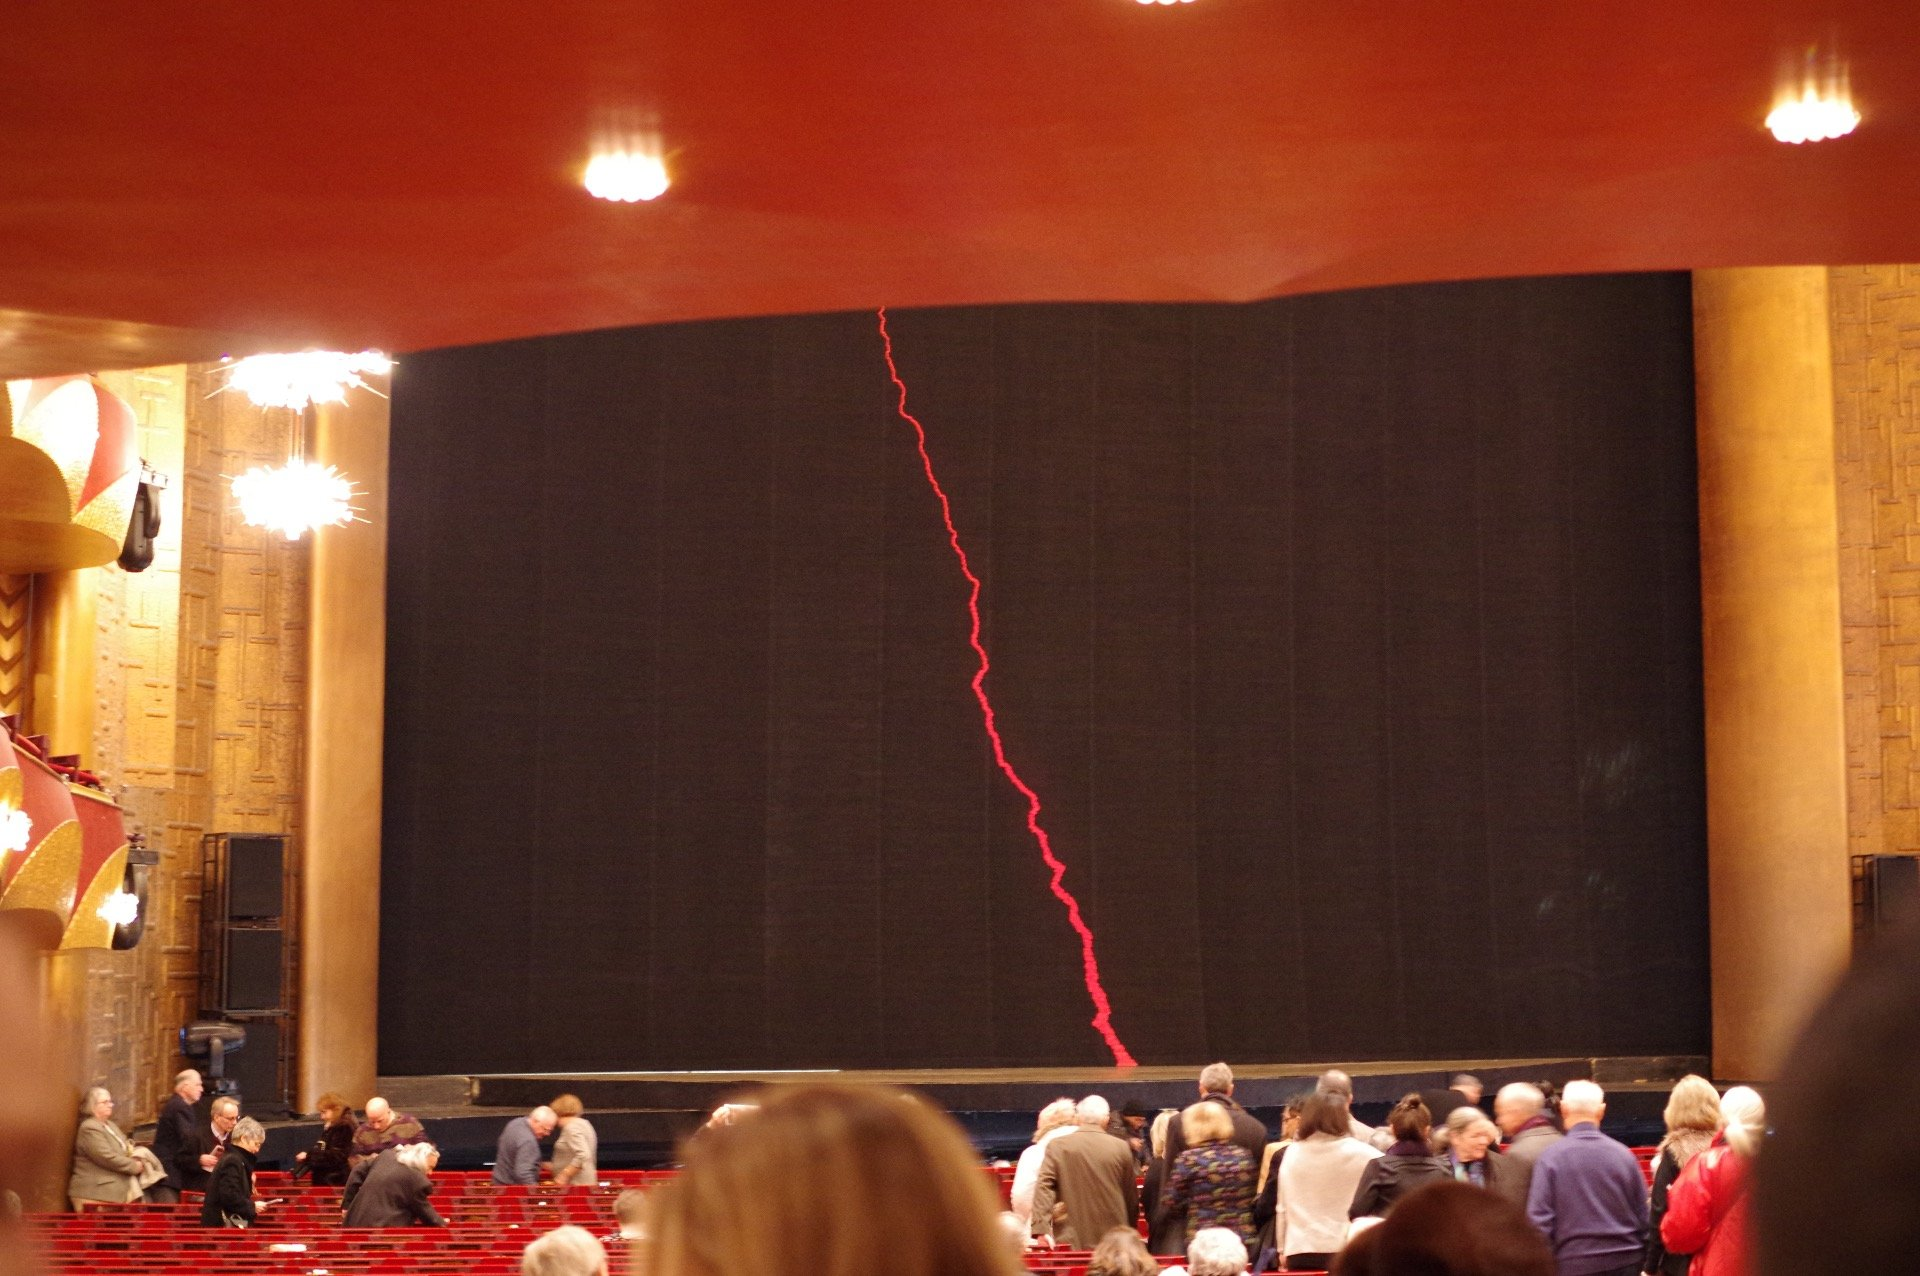 Metropolitan Opera House - Lincoln Center Section Orchestra Row CC Seat 23